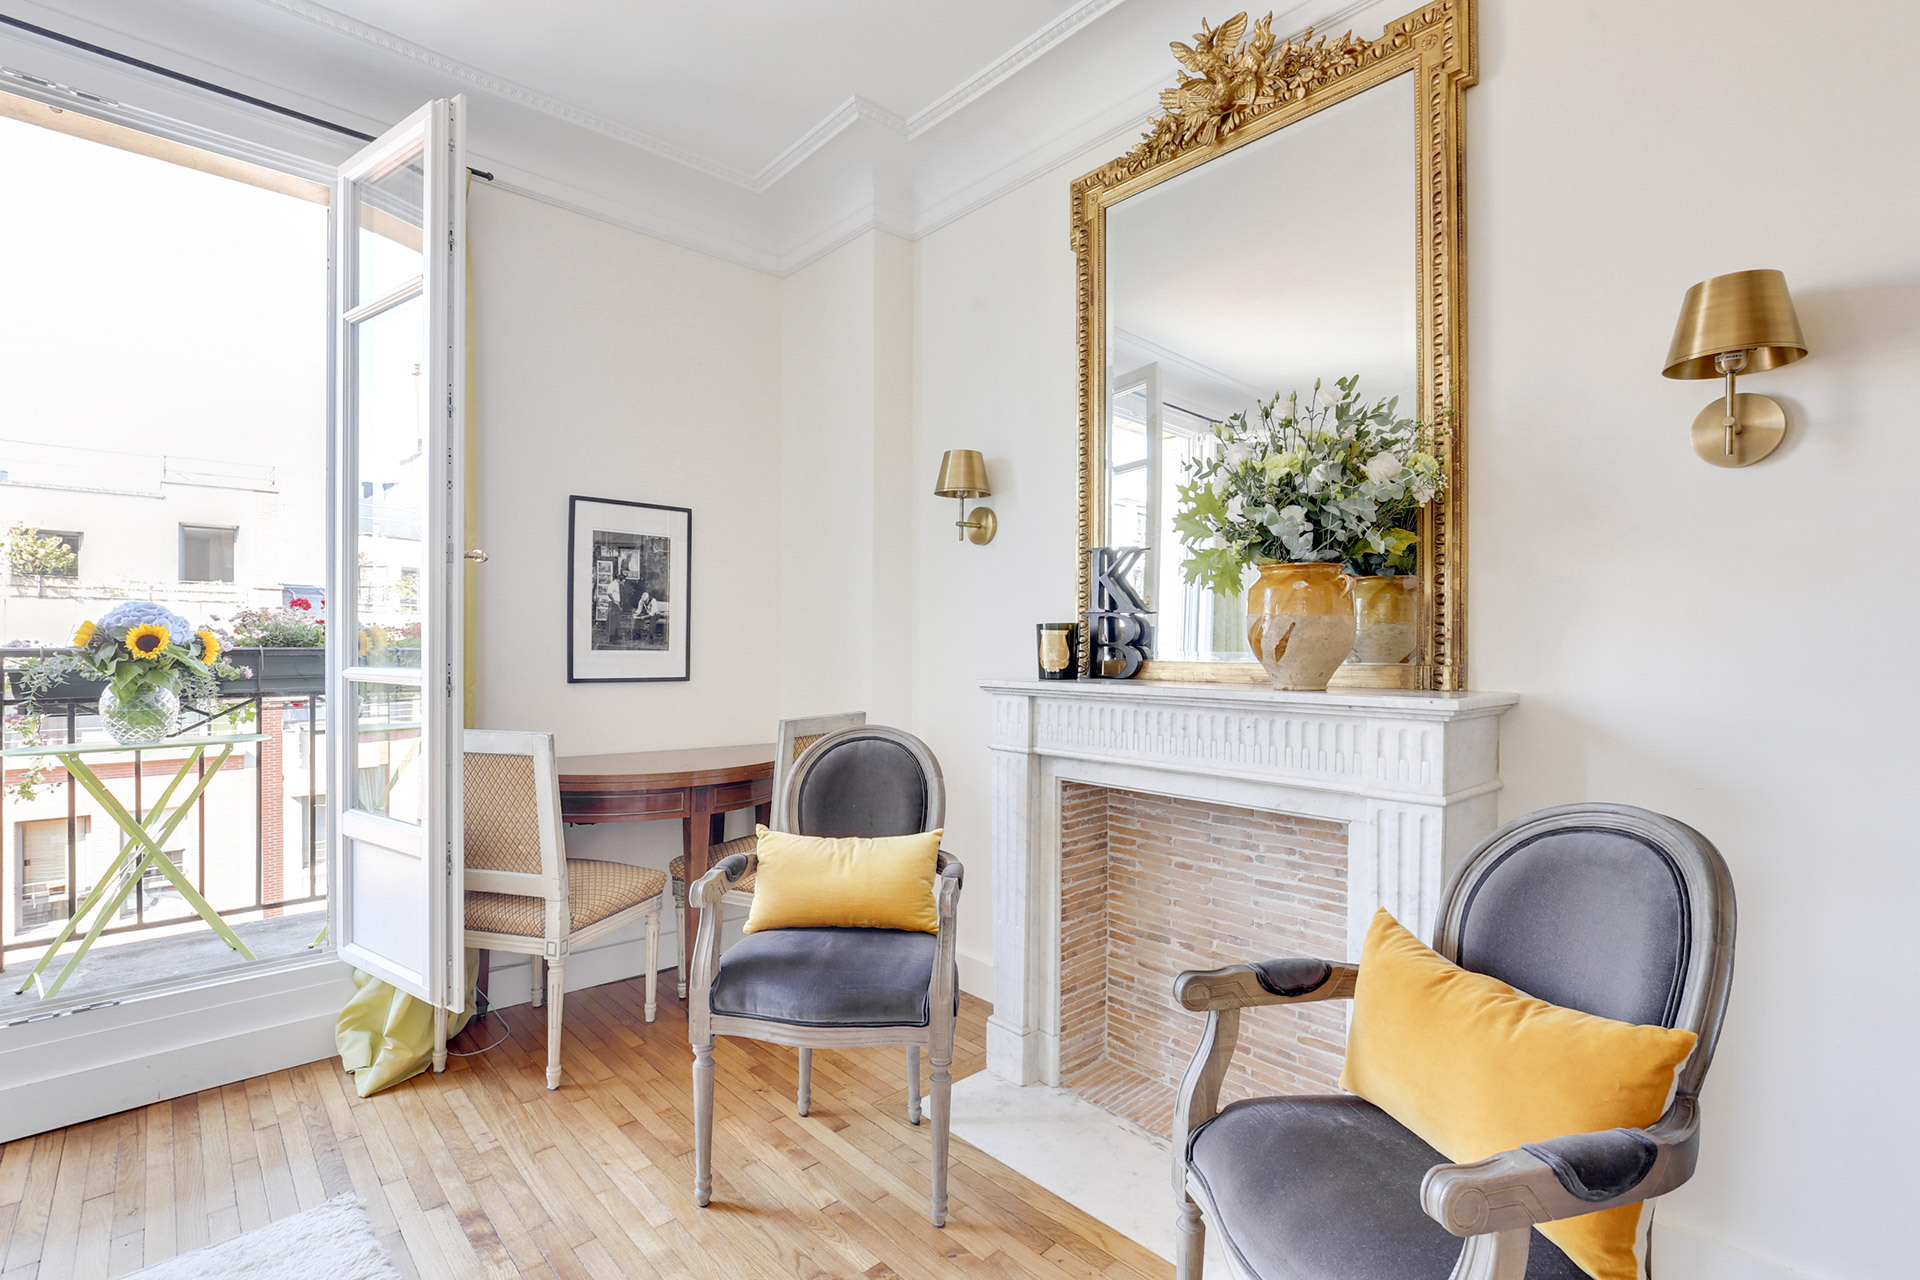 8 Space Saving Ideas To Steal From This Tiny And Perfect Paris Apartment